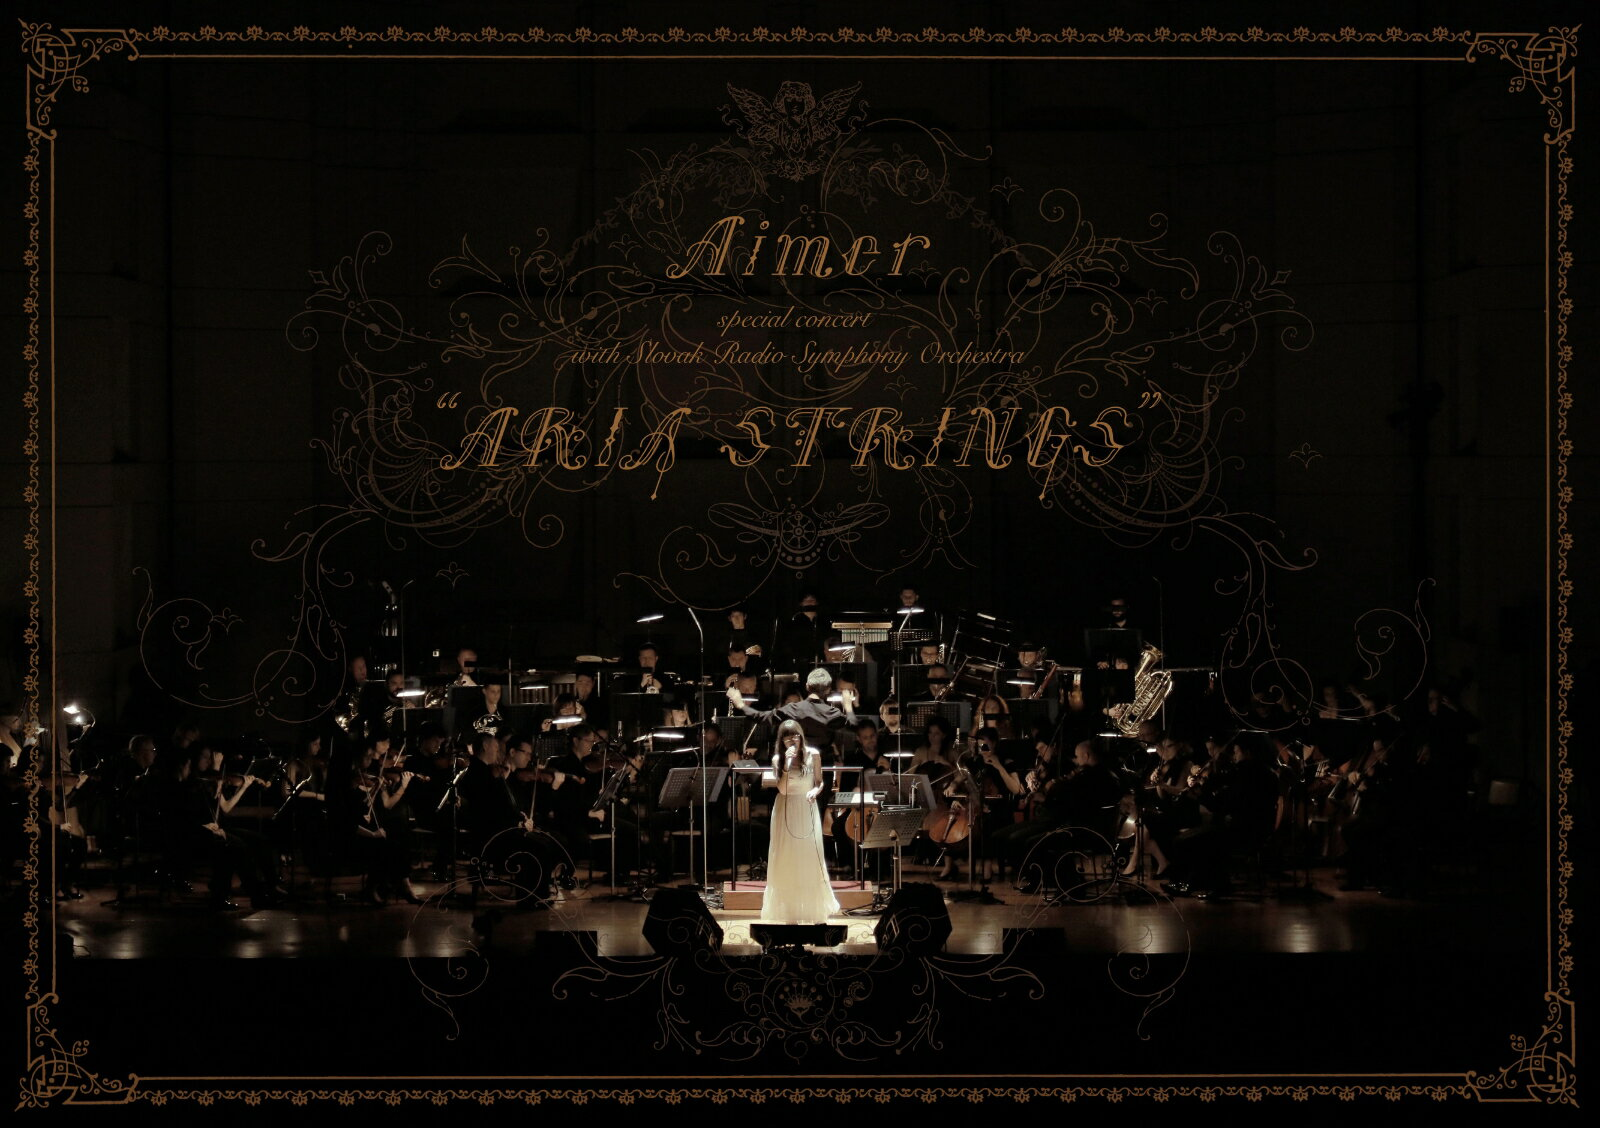 邦楽, ロック・ポップス Aimer special concert with ARIA STRINGS() Aimer